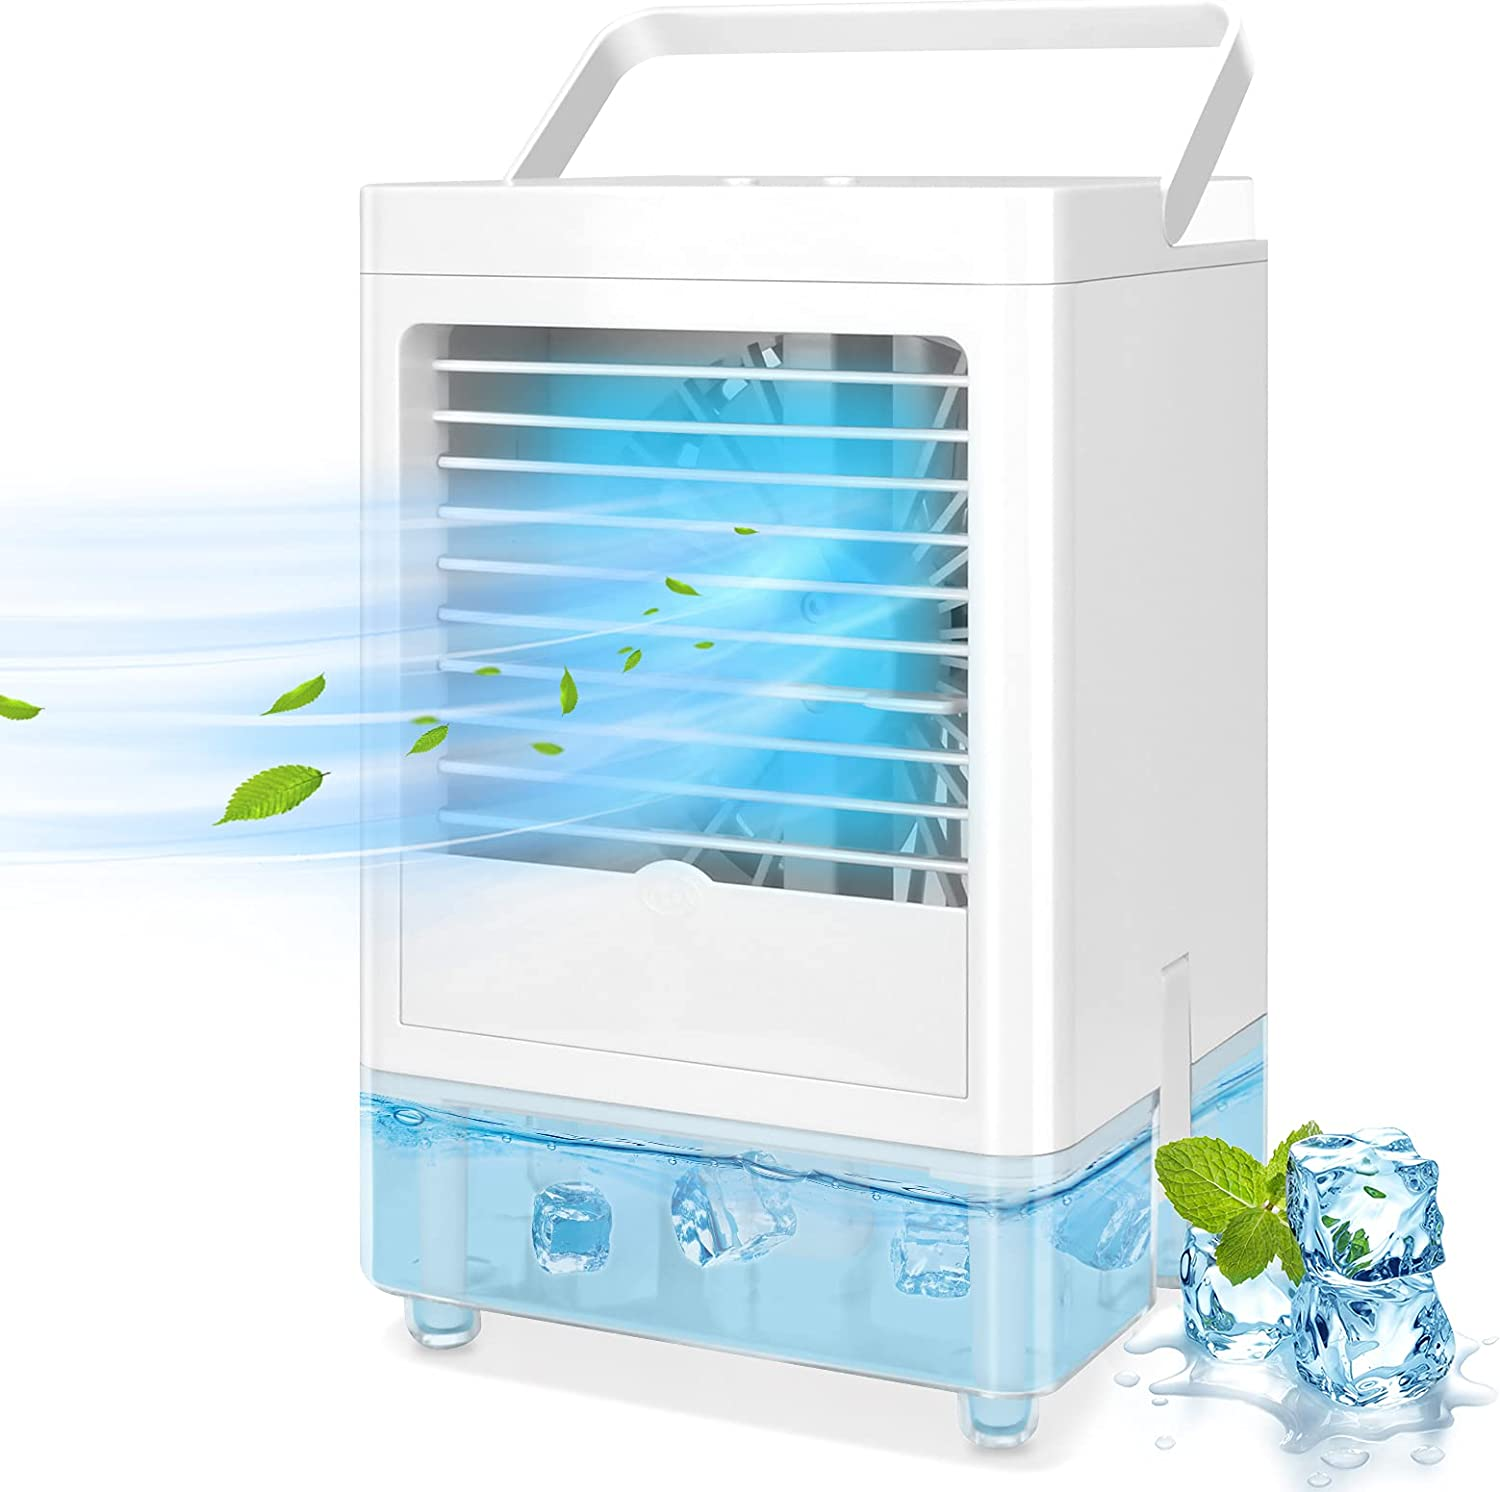 TAECCL Portable Air Conditioner Evaporative Air Cooler with Timer Humidifier Misting Fan Mini Air Conditioner Personal Cooler Desk Fan Battery Operated Rechargeable Cooling Fan for Room, Office